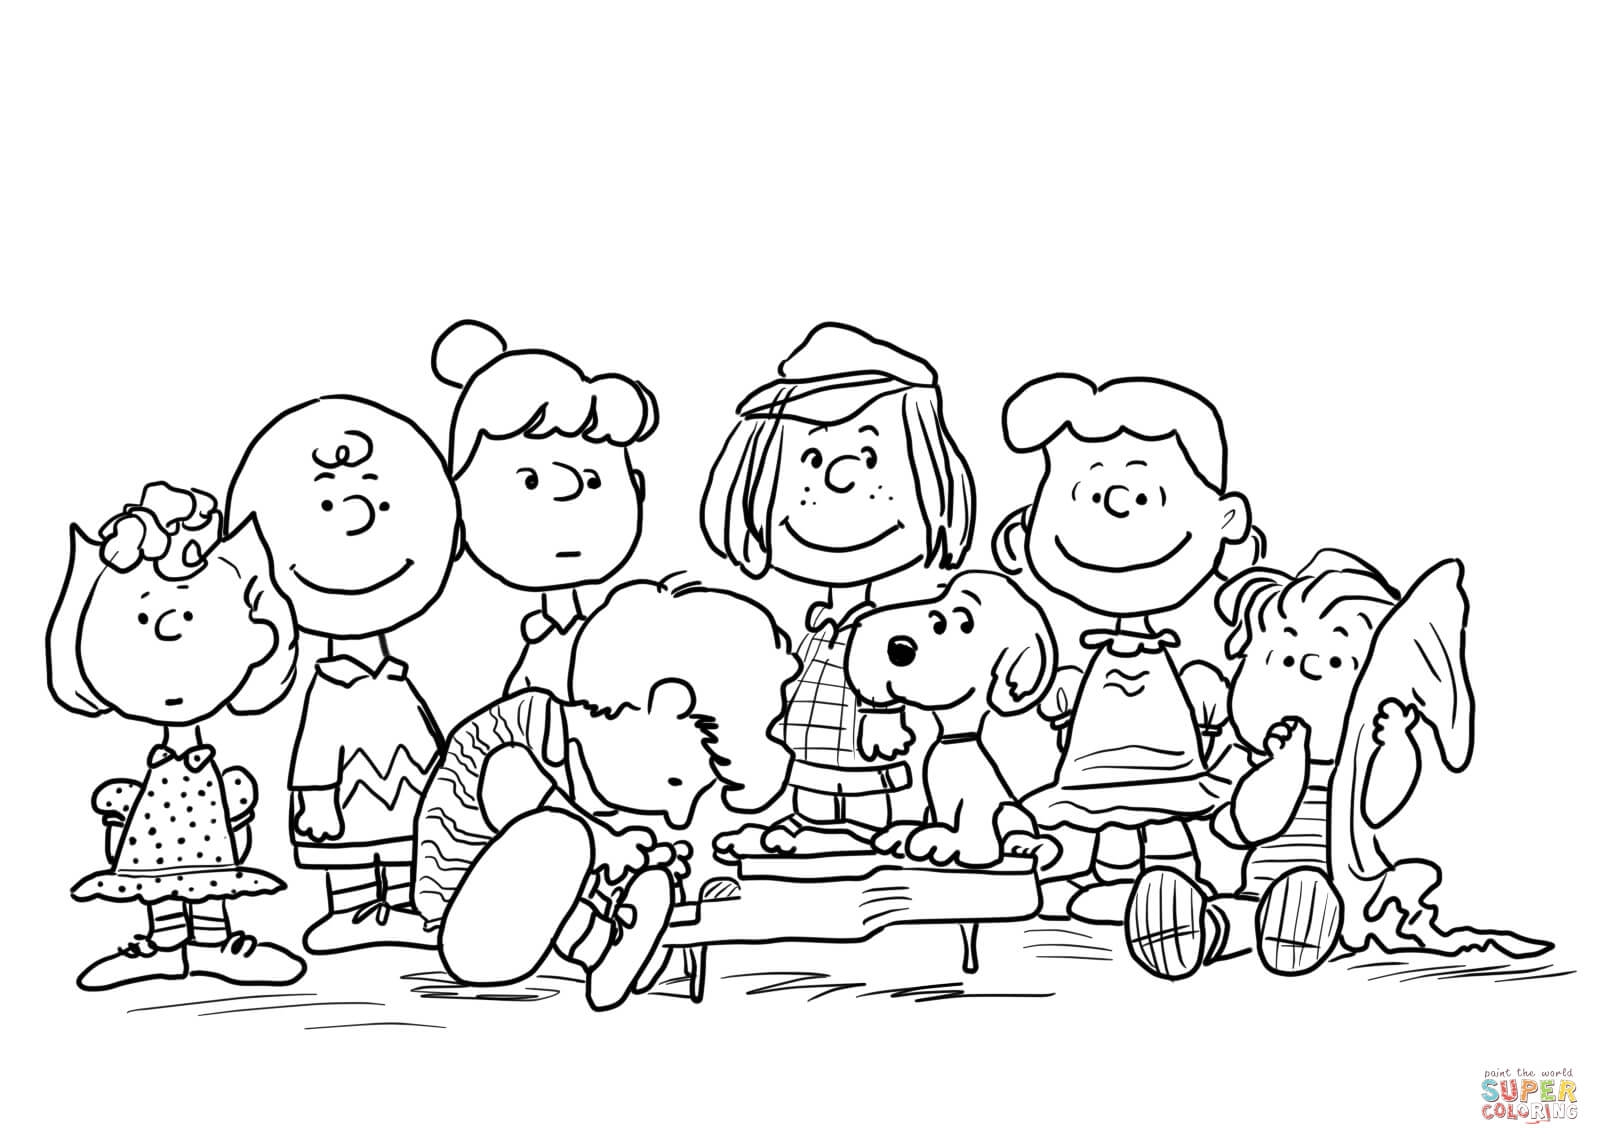 Peanuts Coloring Pages - Peanuts Characters Coloring Page